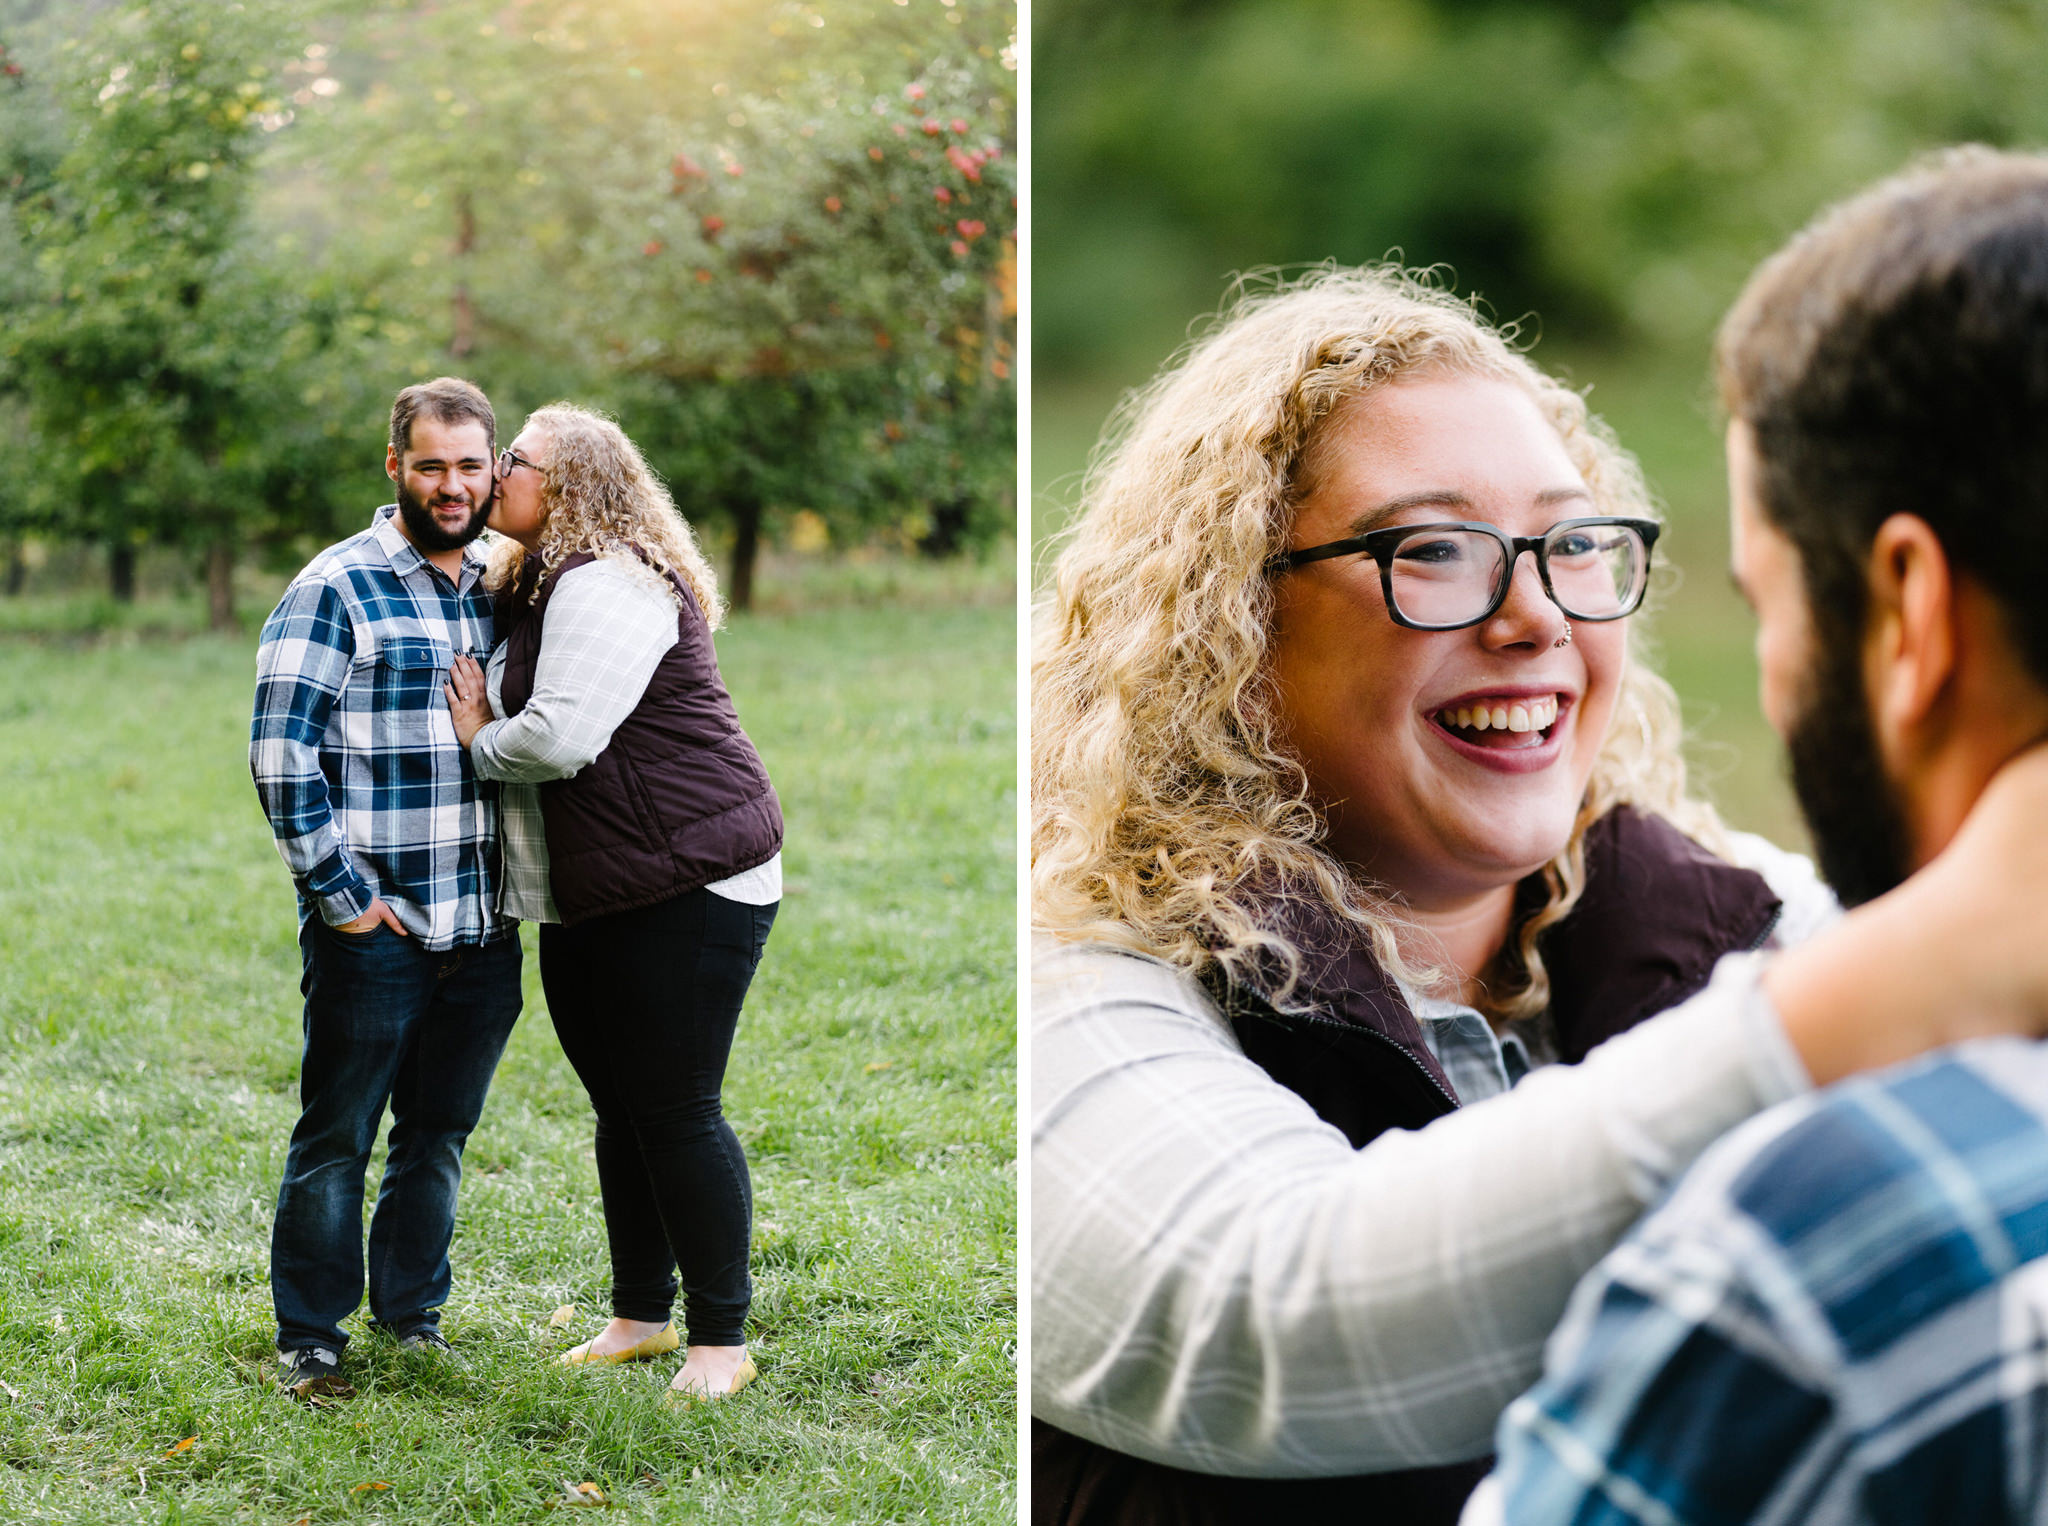 003-rempel-photography-wedding-chicago-family-oak-park-austin-brooklyn-engagement-grand-rapids-apple-orchard-robinettes.jpg